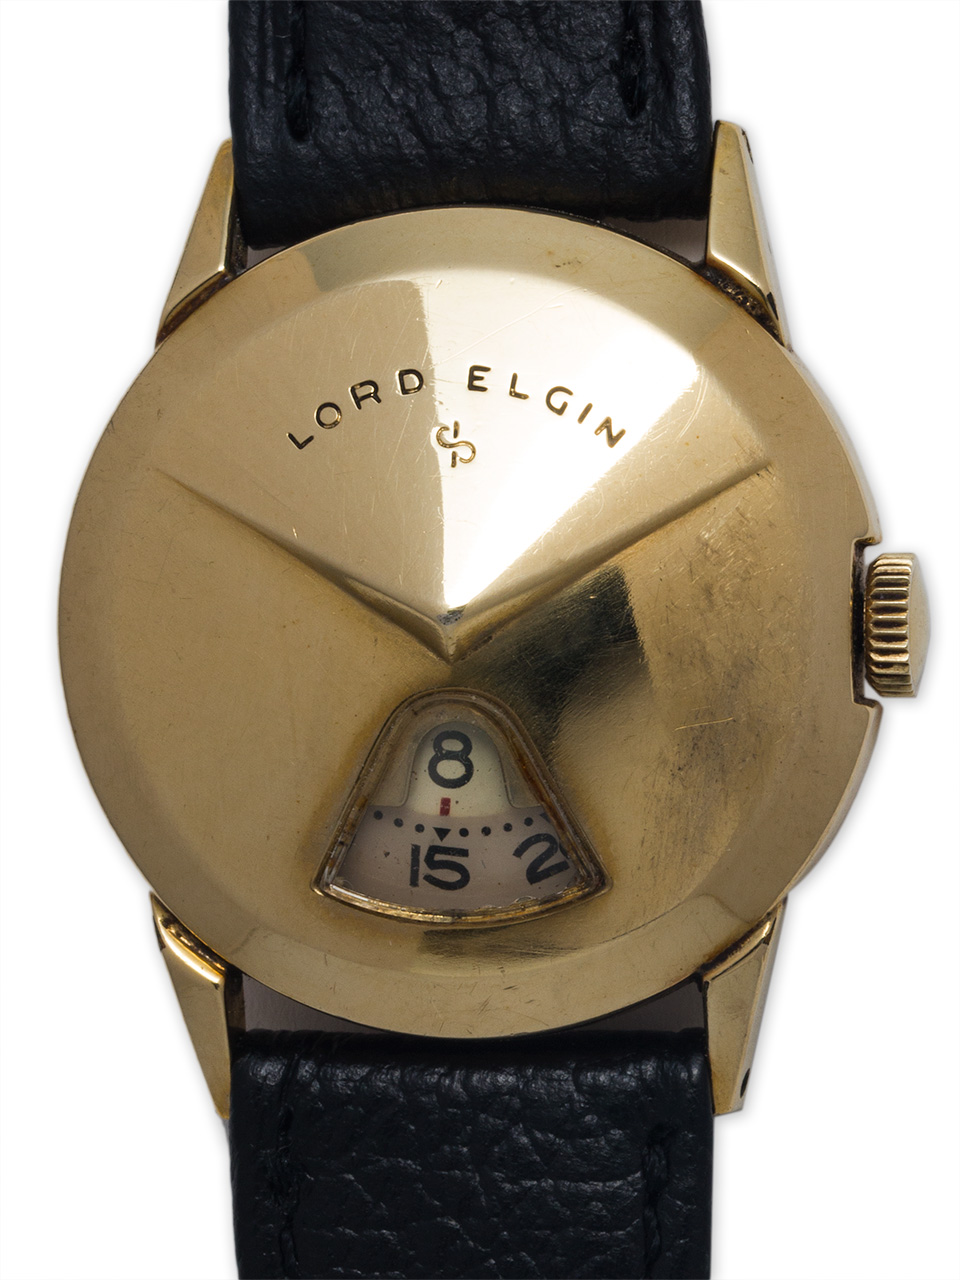 Lord Elgin YGF Direct Read circa 1950's